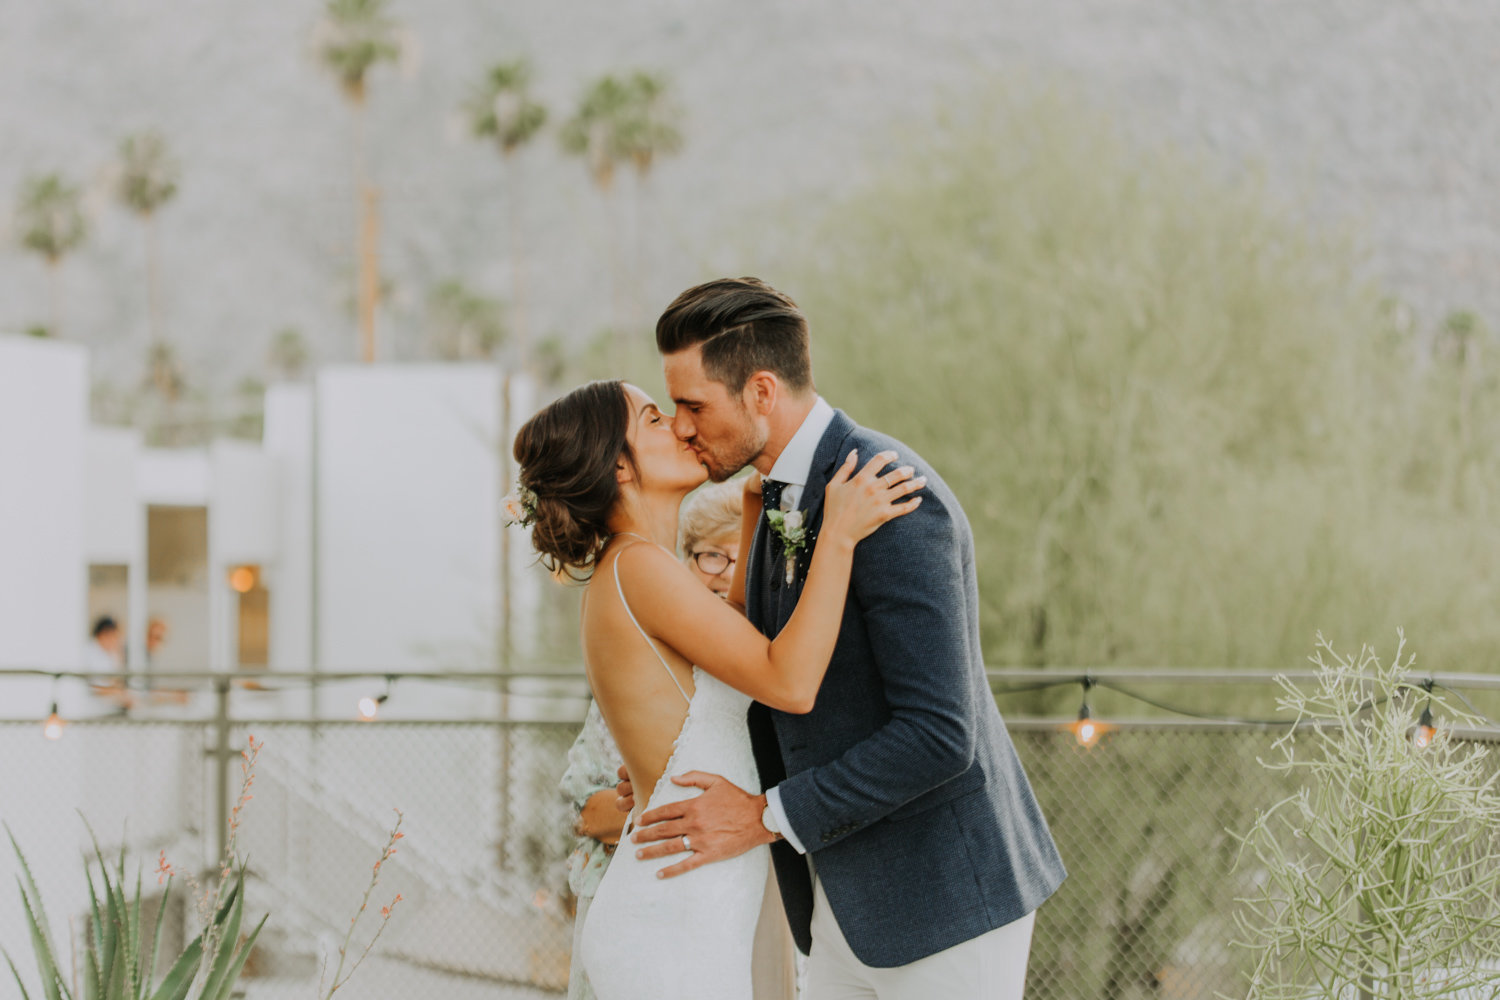 Brianna Broyles_Palm Springs Wedding Photographer_Ace Hotel Wedding_Ace Hotel Palm Springs-54